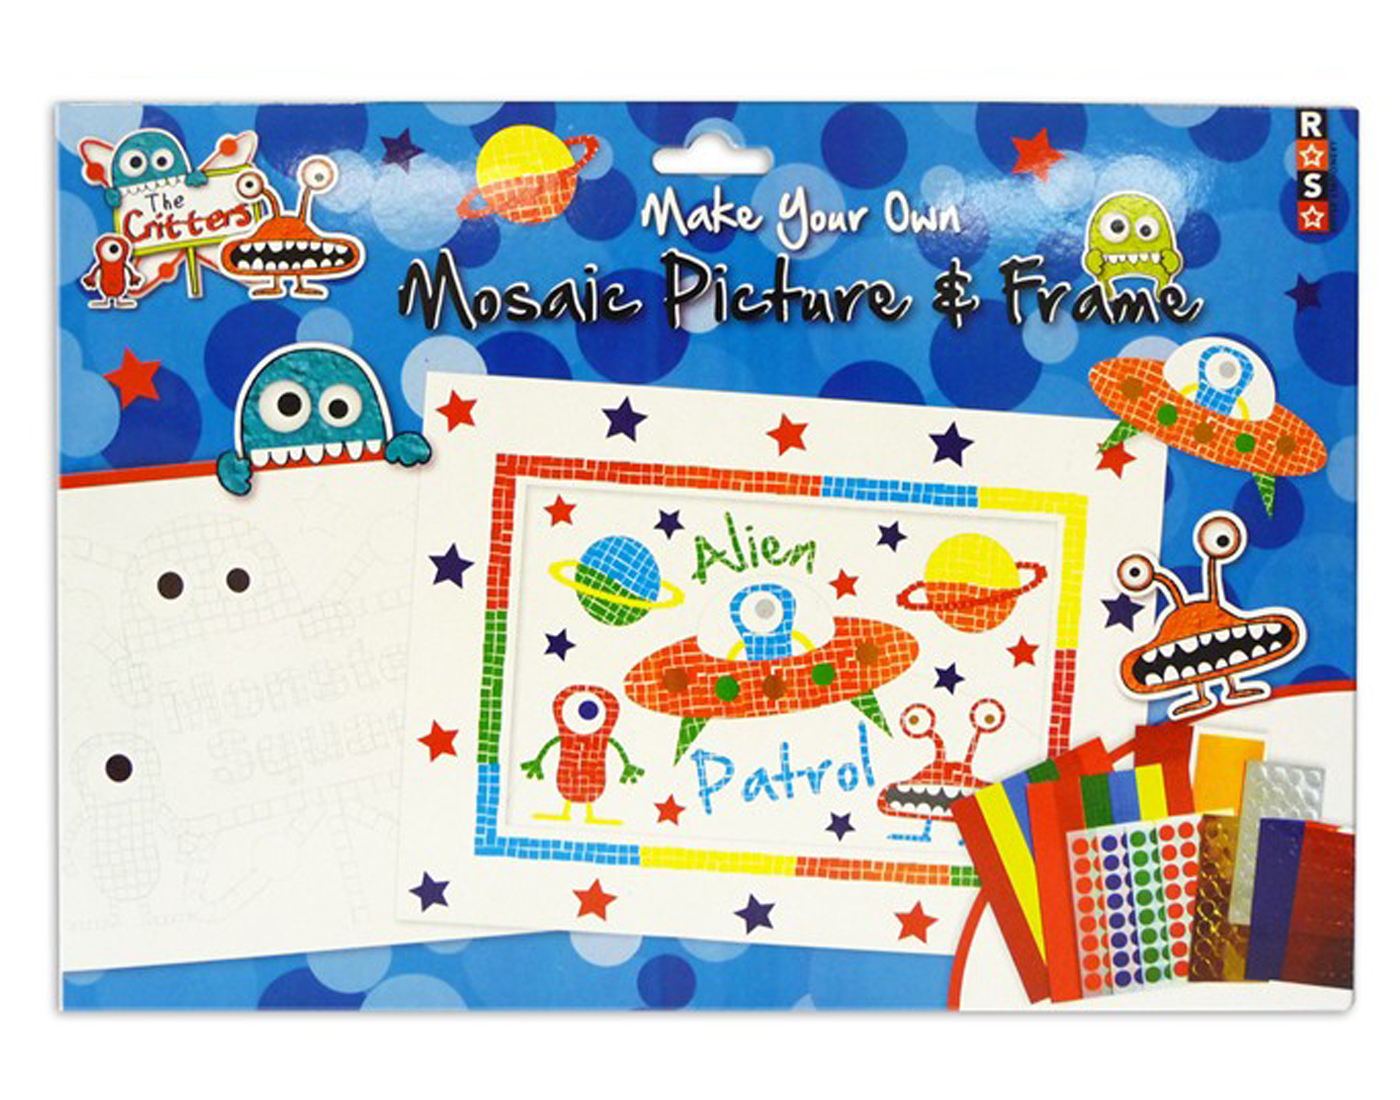 The Critters Make Your Own Mosaic Picture Amp Frame Craft